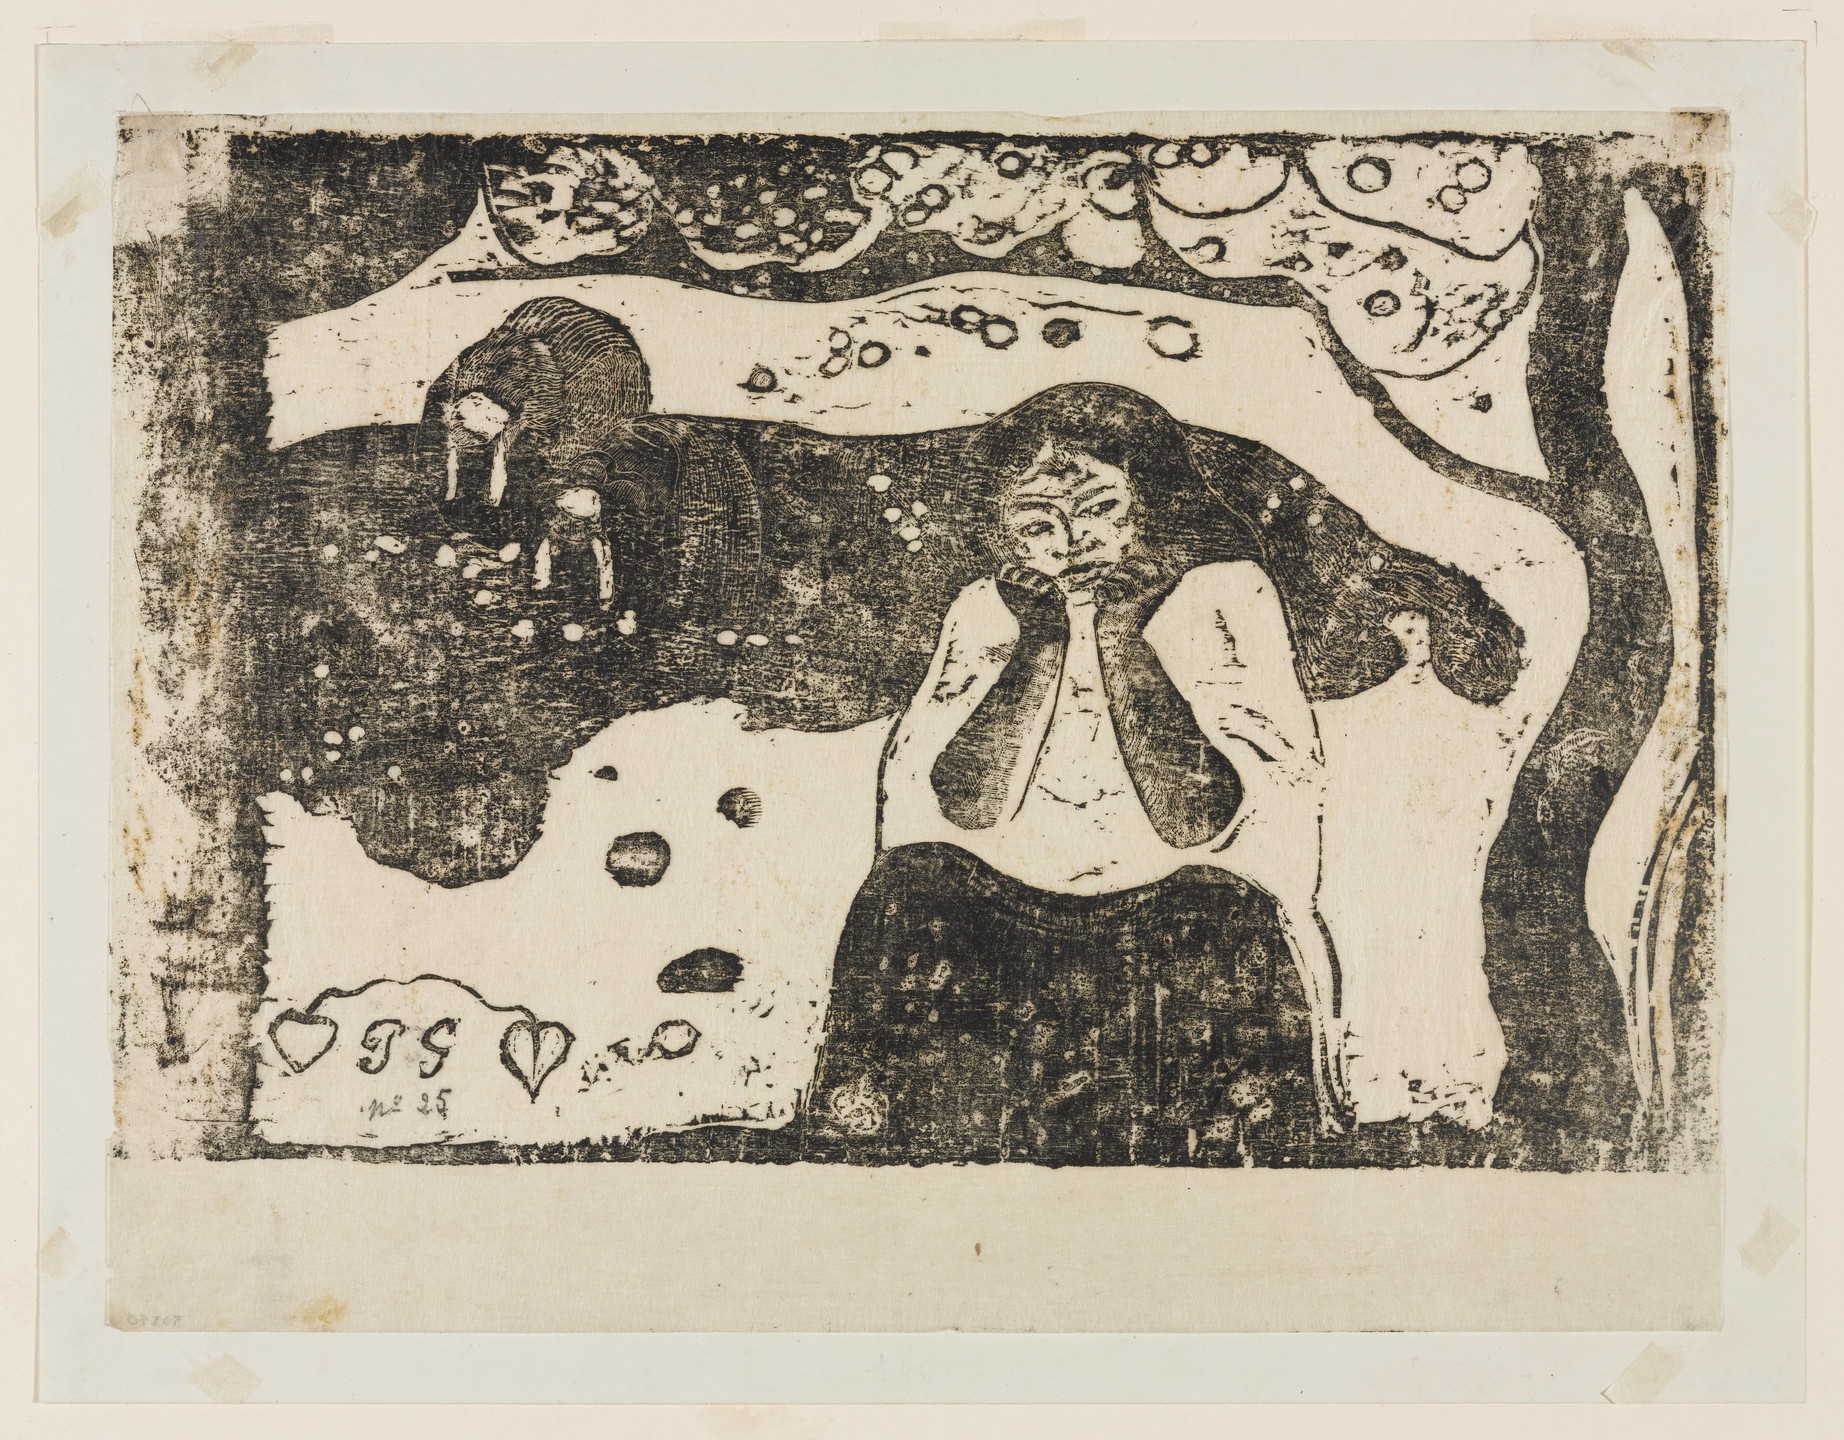 Paul Gauguin. Human Misery (Misères humaines). c. 1898-99